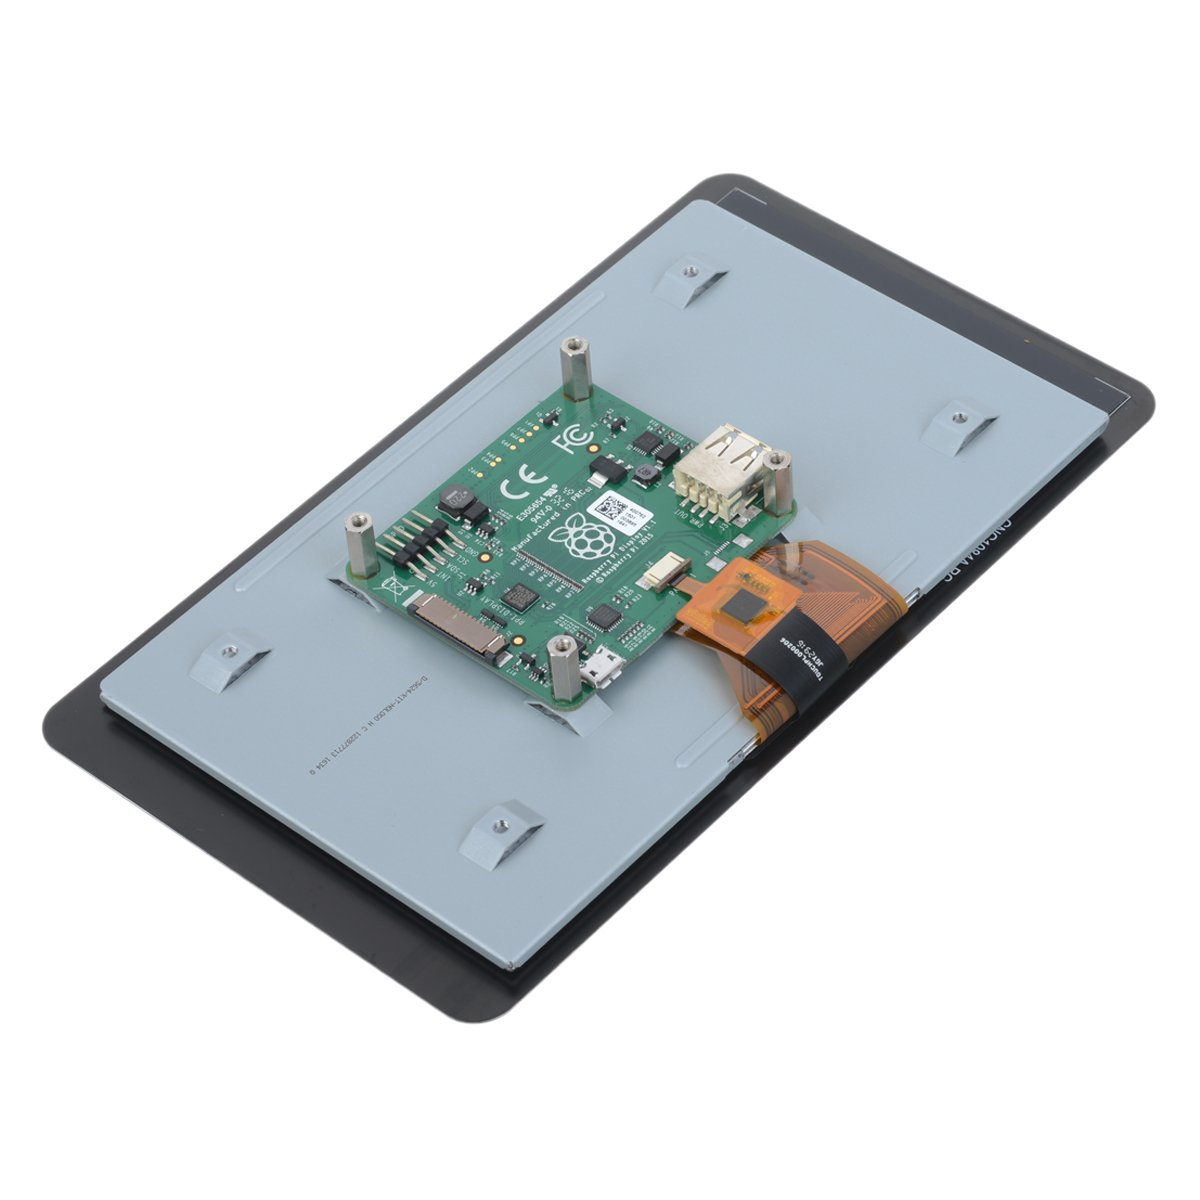 7'' 800 x 480 Touch Screen Display for Raspberry Pi 2B / B+/ A+ by OLSUS (Image #3)